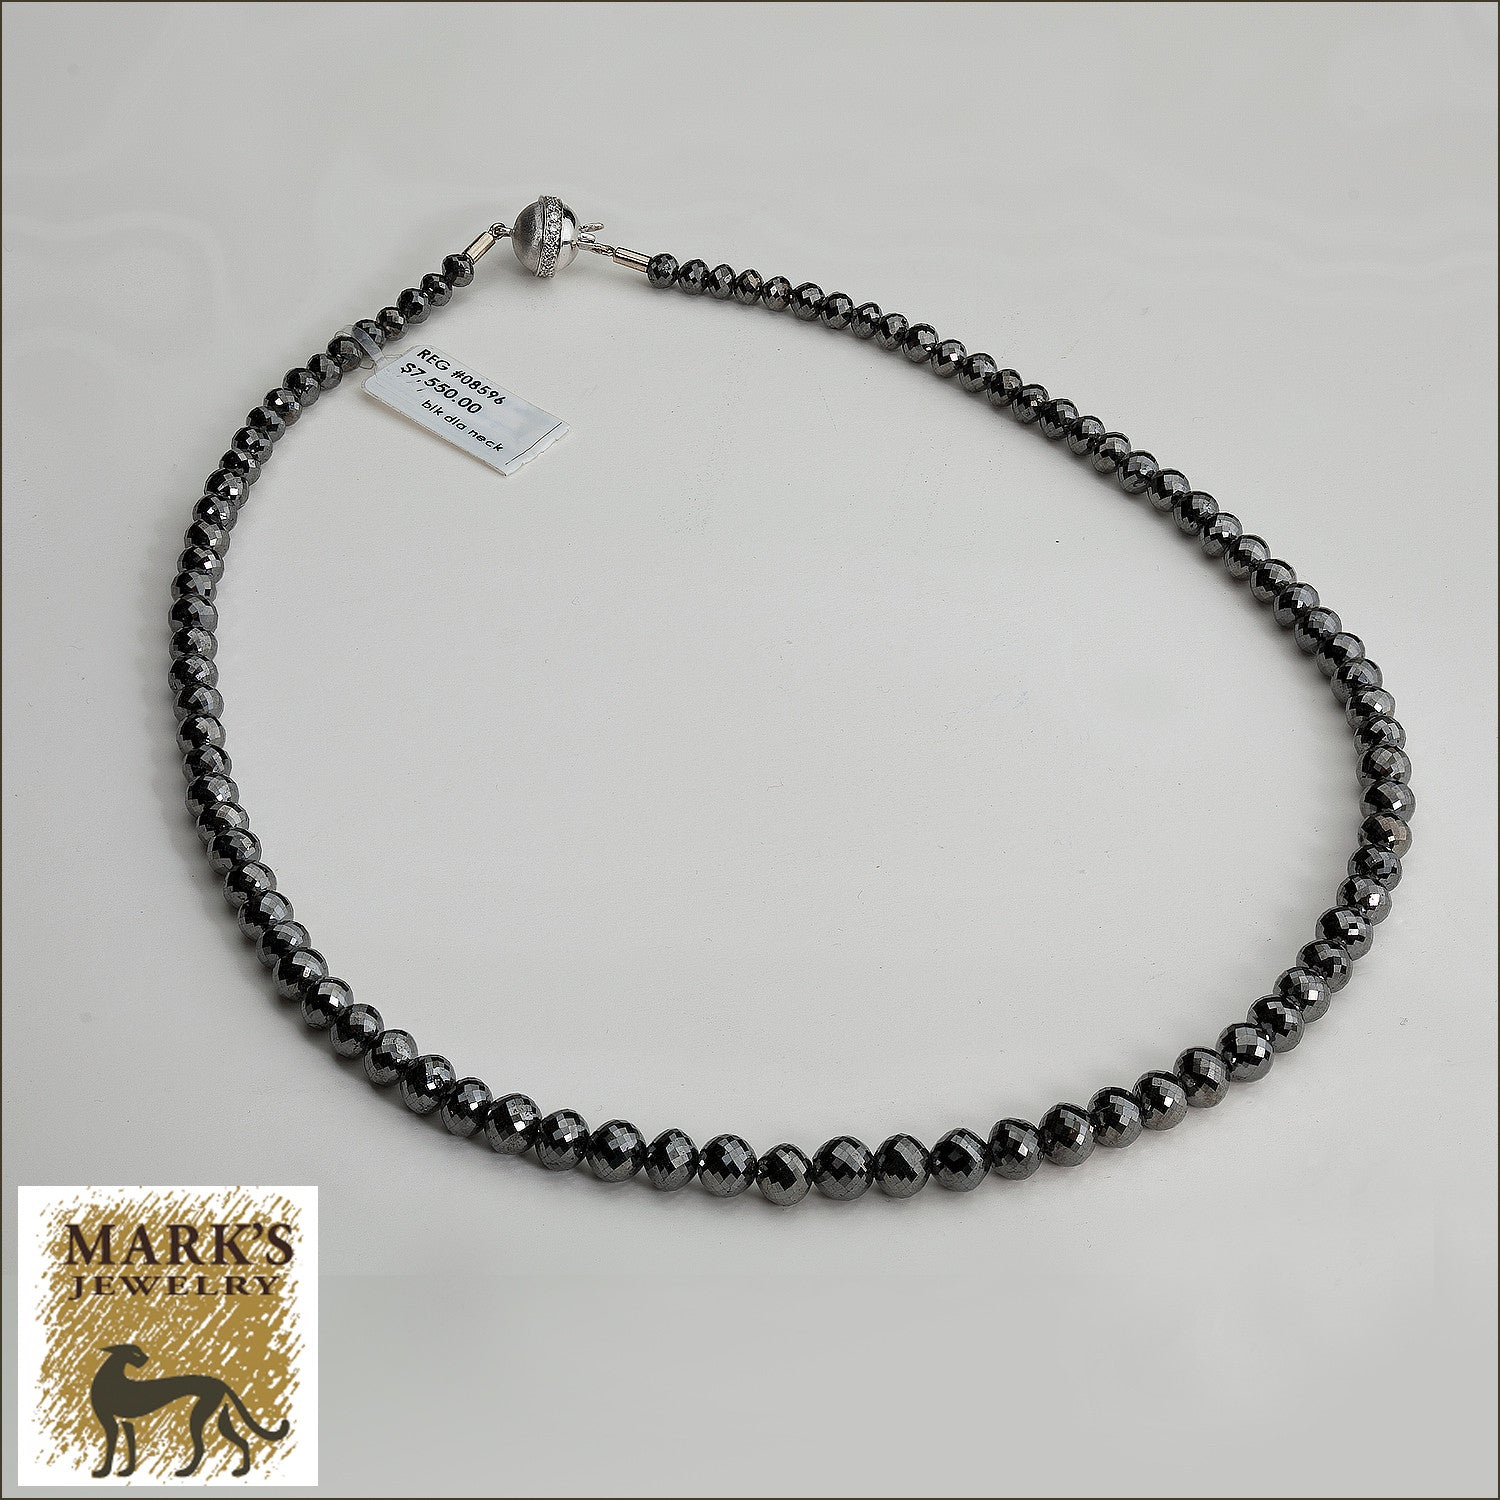 gucci jewelry drop necklaces rose necklace at id master for gold j black horsebit sale diamond